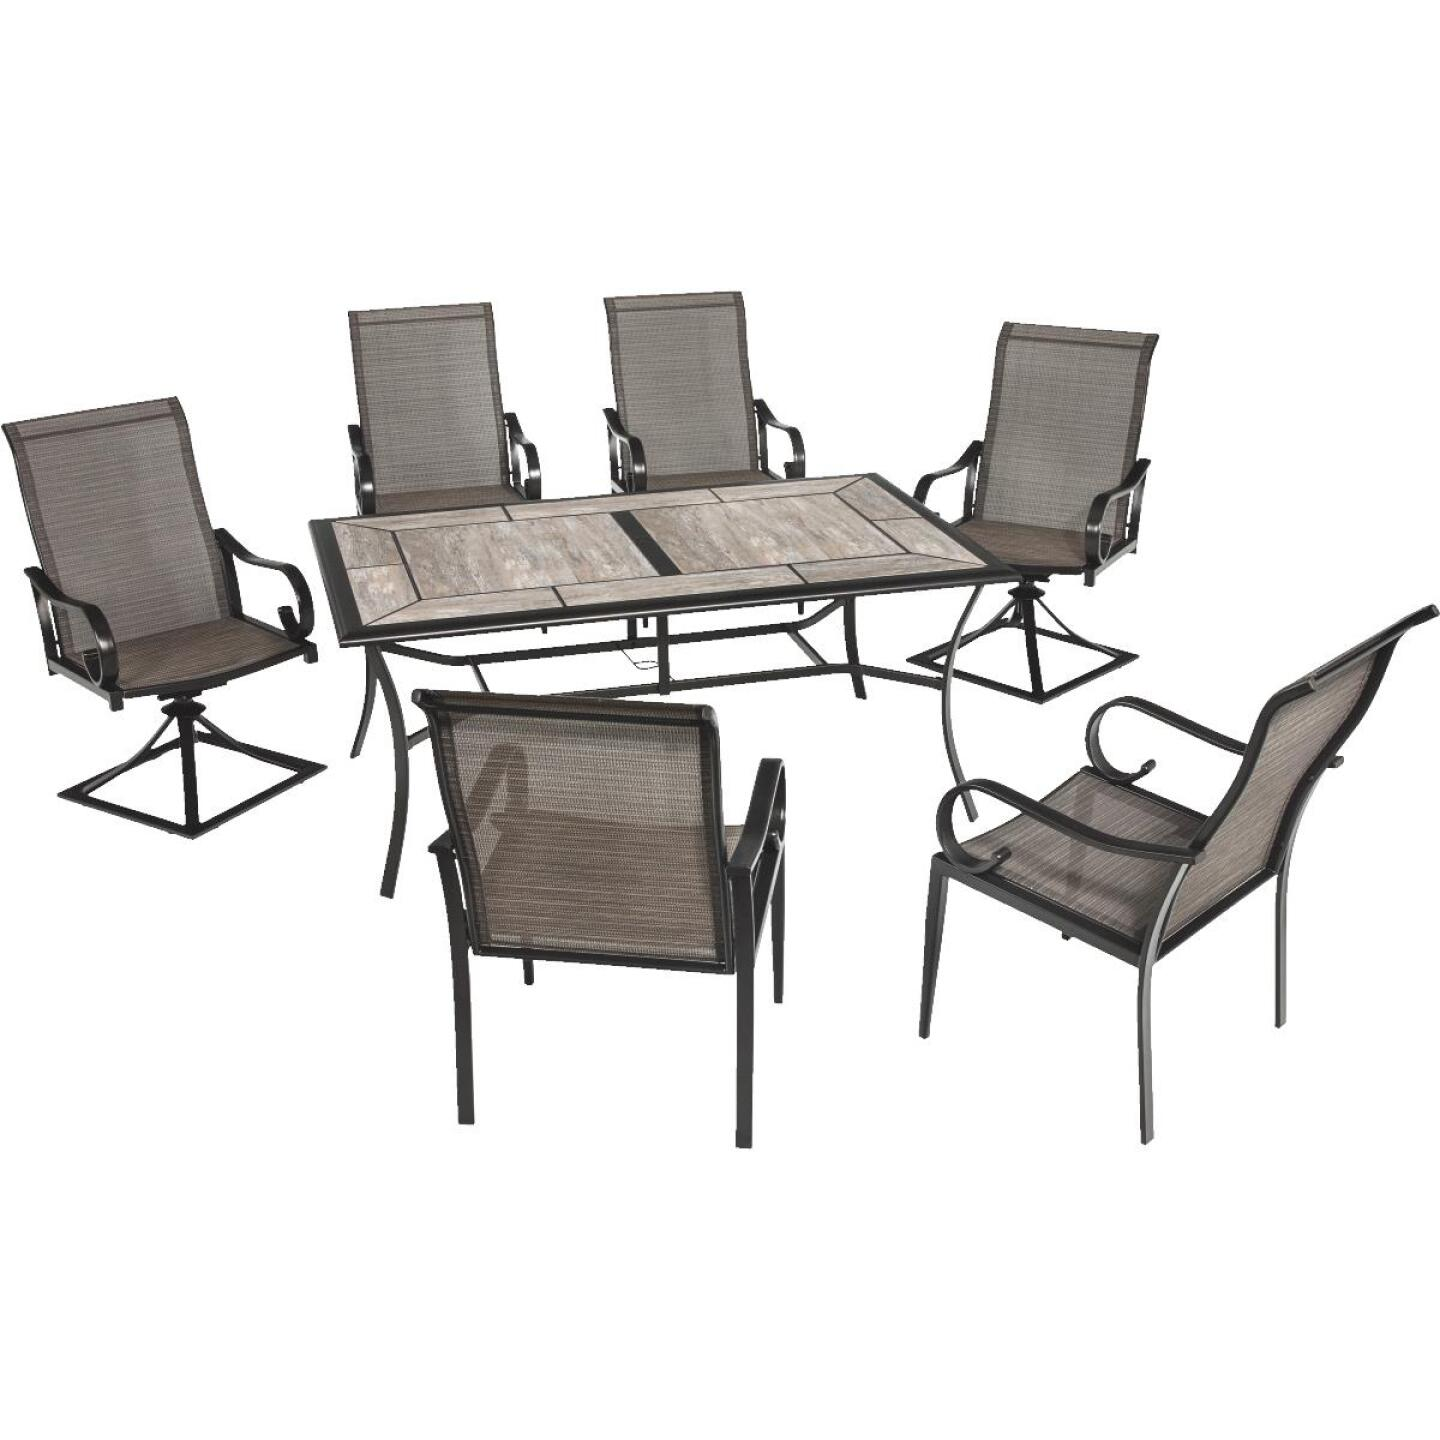 Outdoor Expressions Berkshire 7-Piece Dining Set Image 23